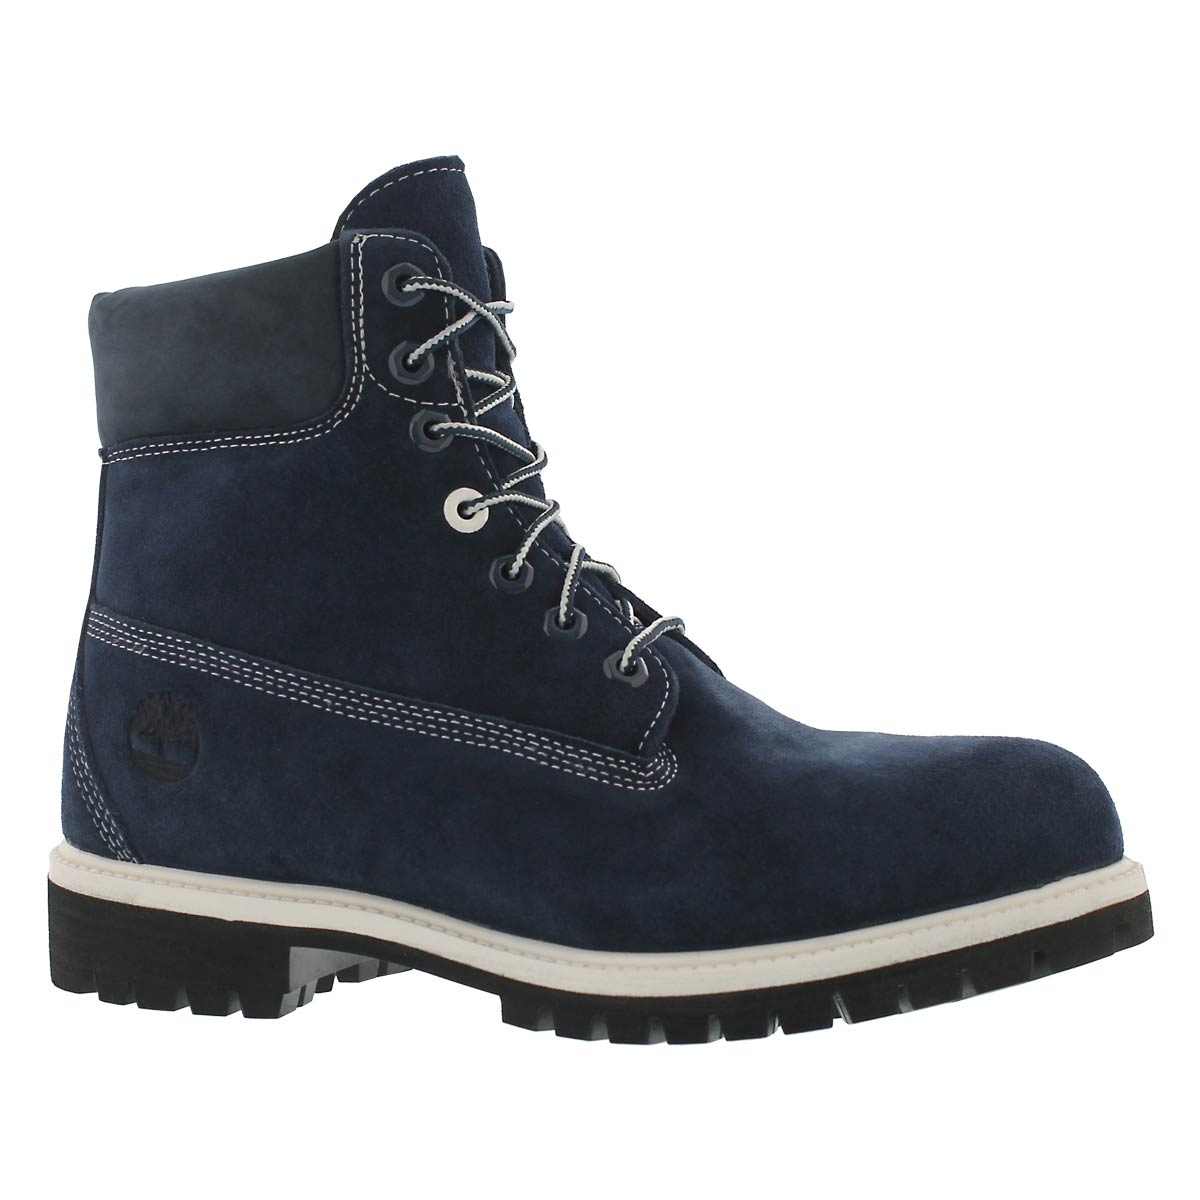 Men's ICON navy suede waterproof ankle boots